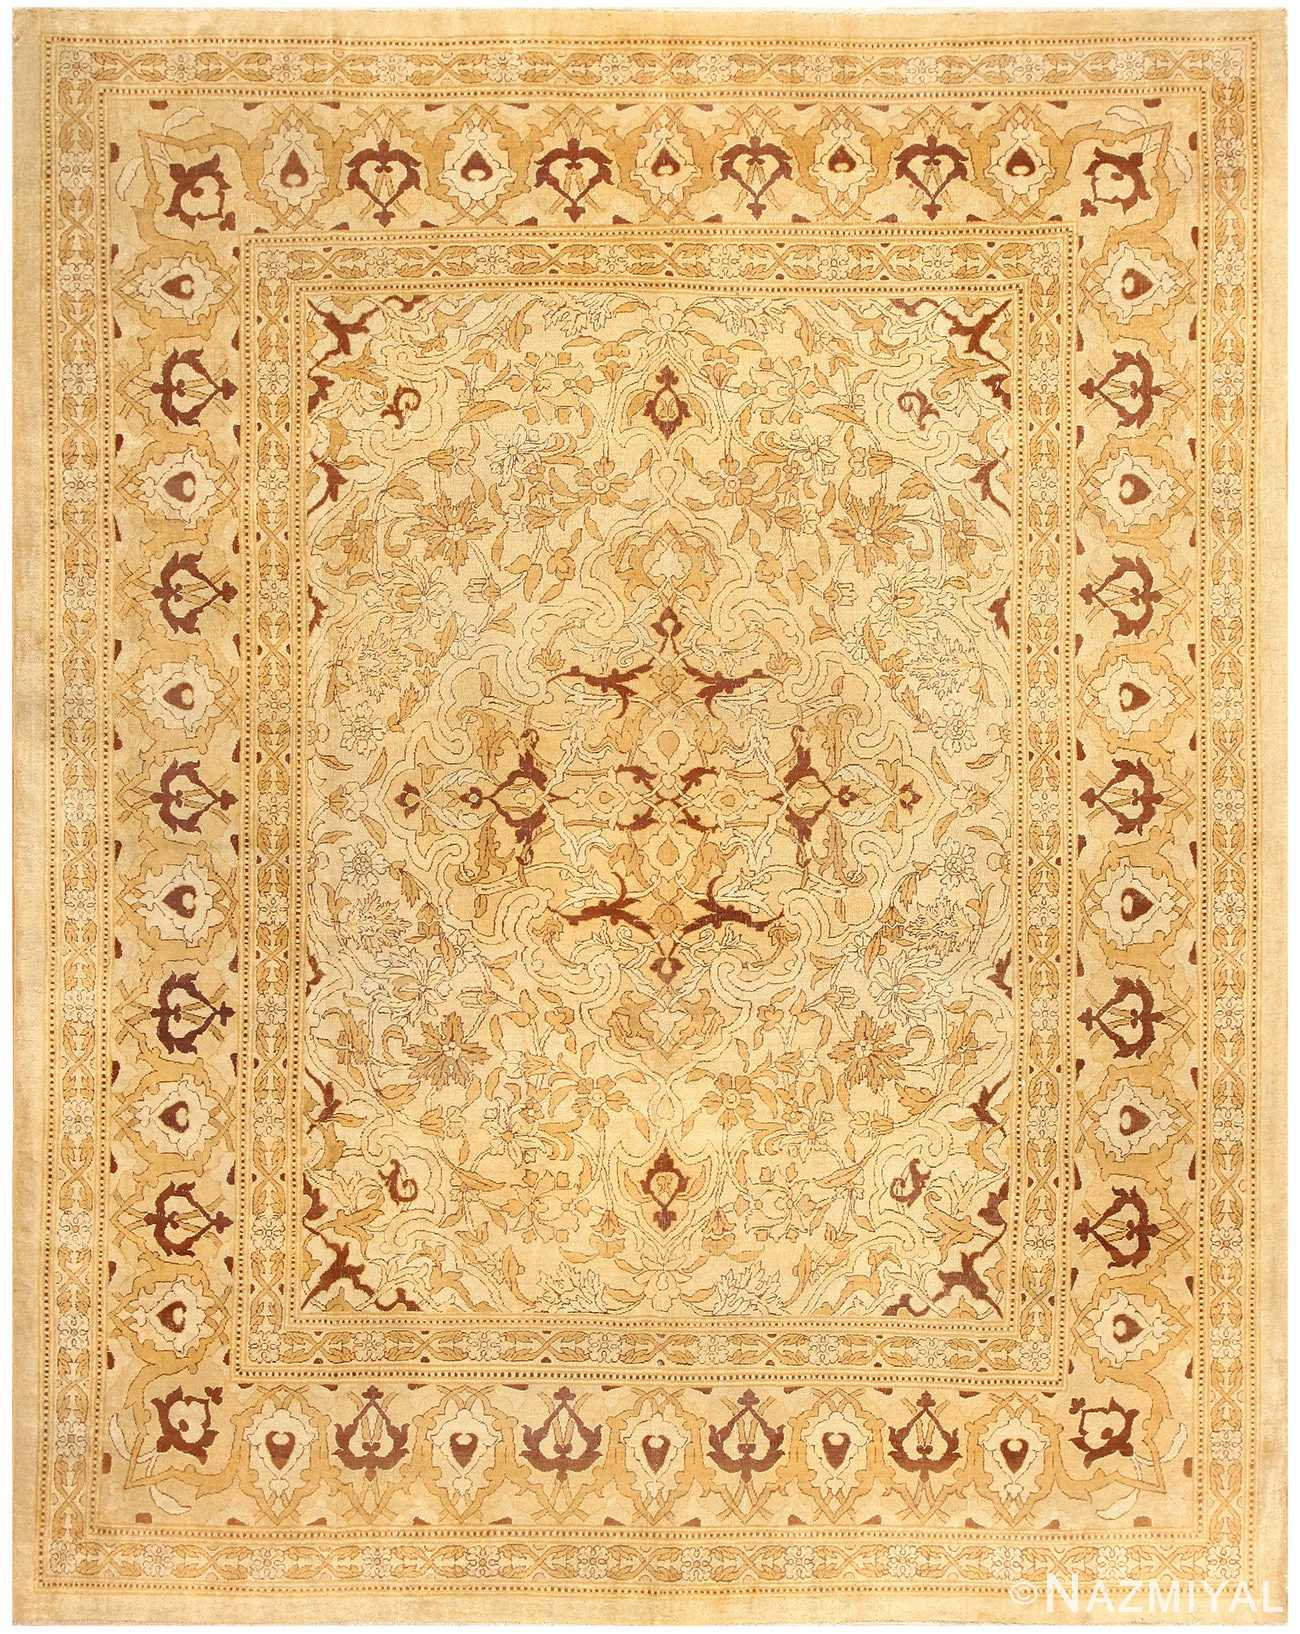 Antique Indian Amritsar Rug 50507 Detail/Large View